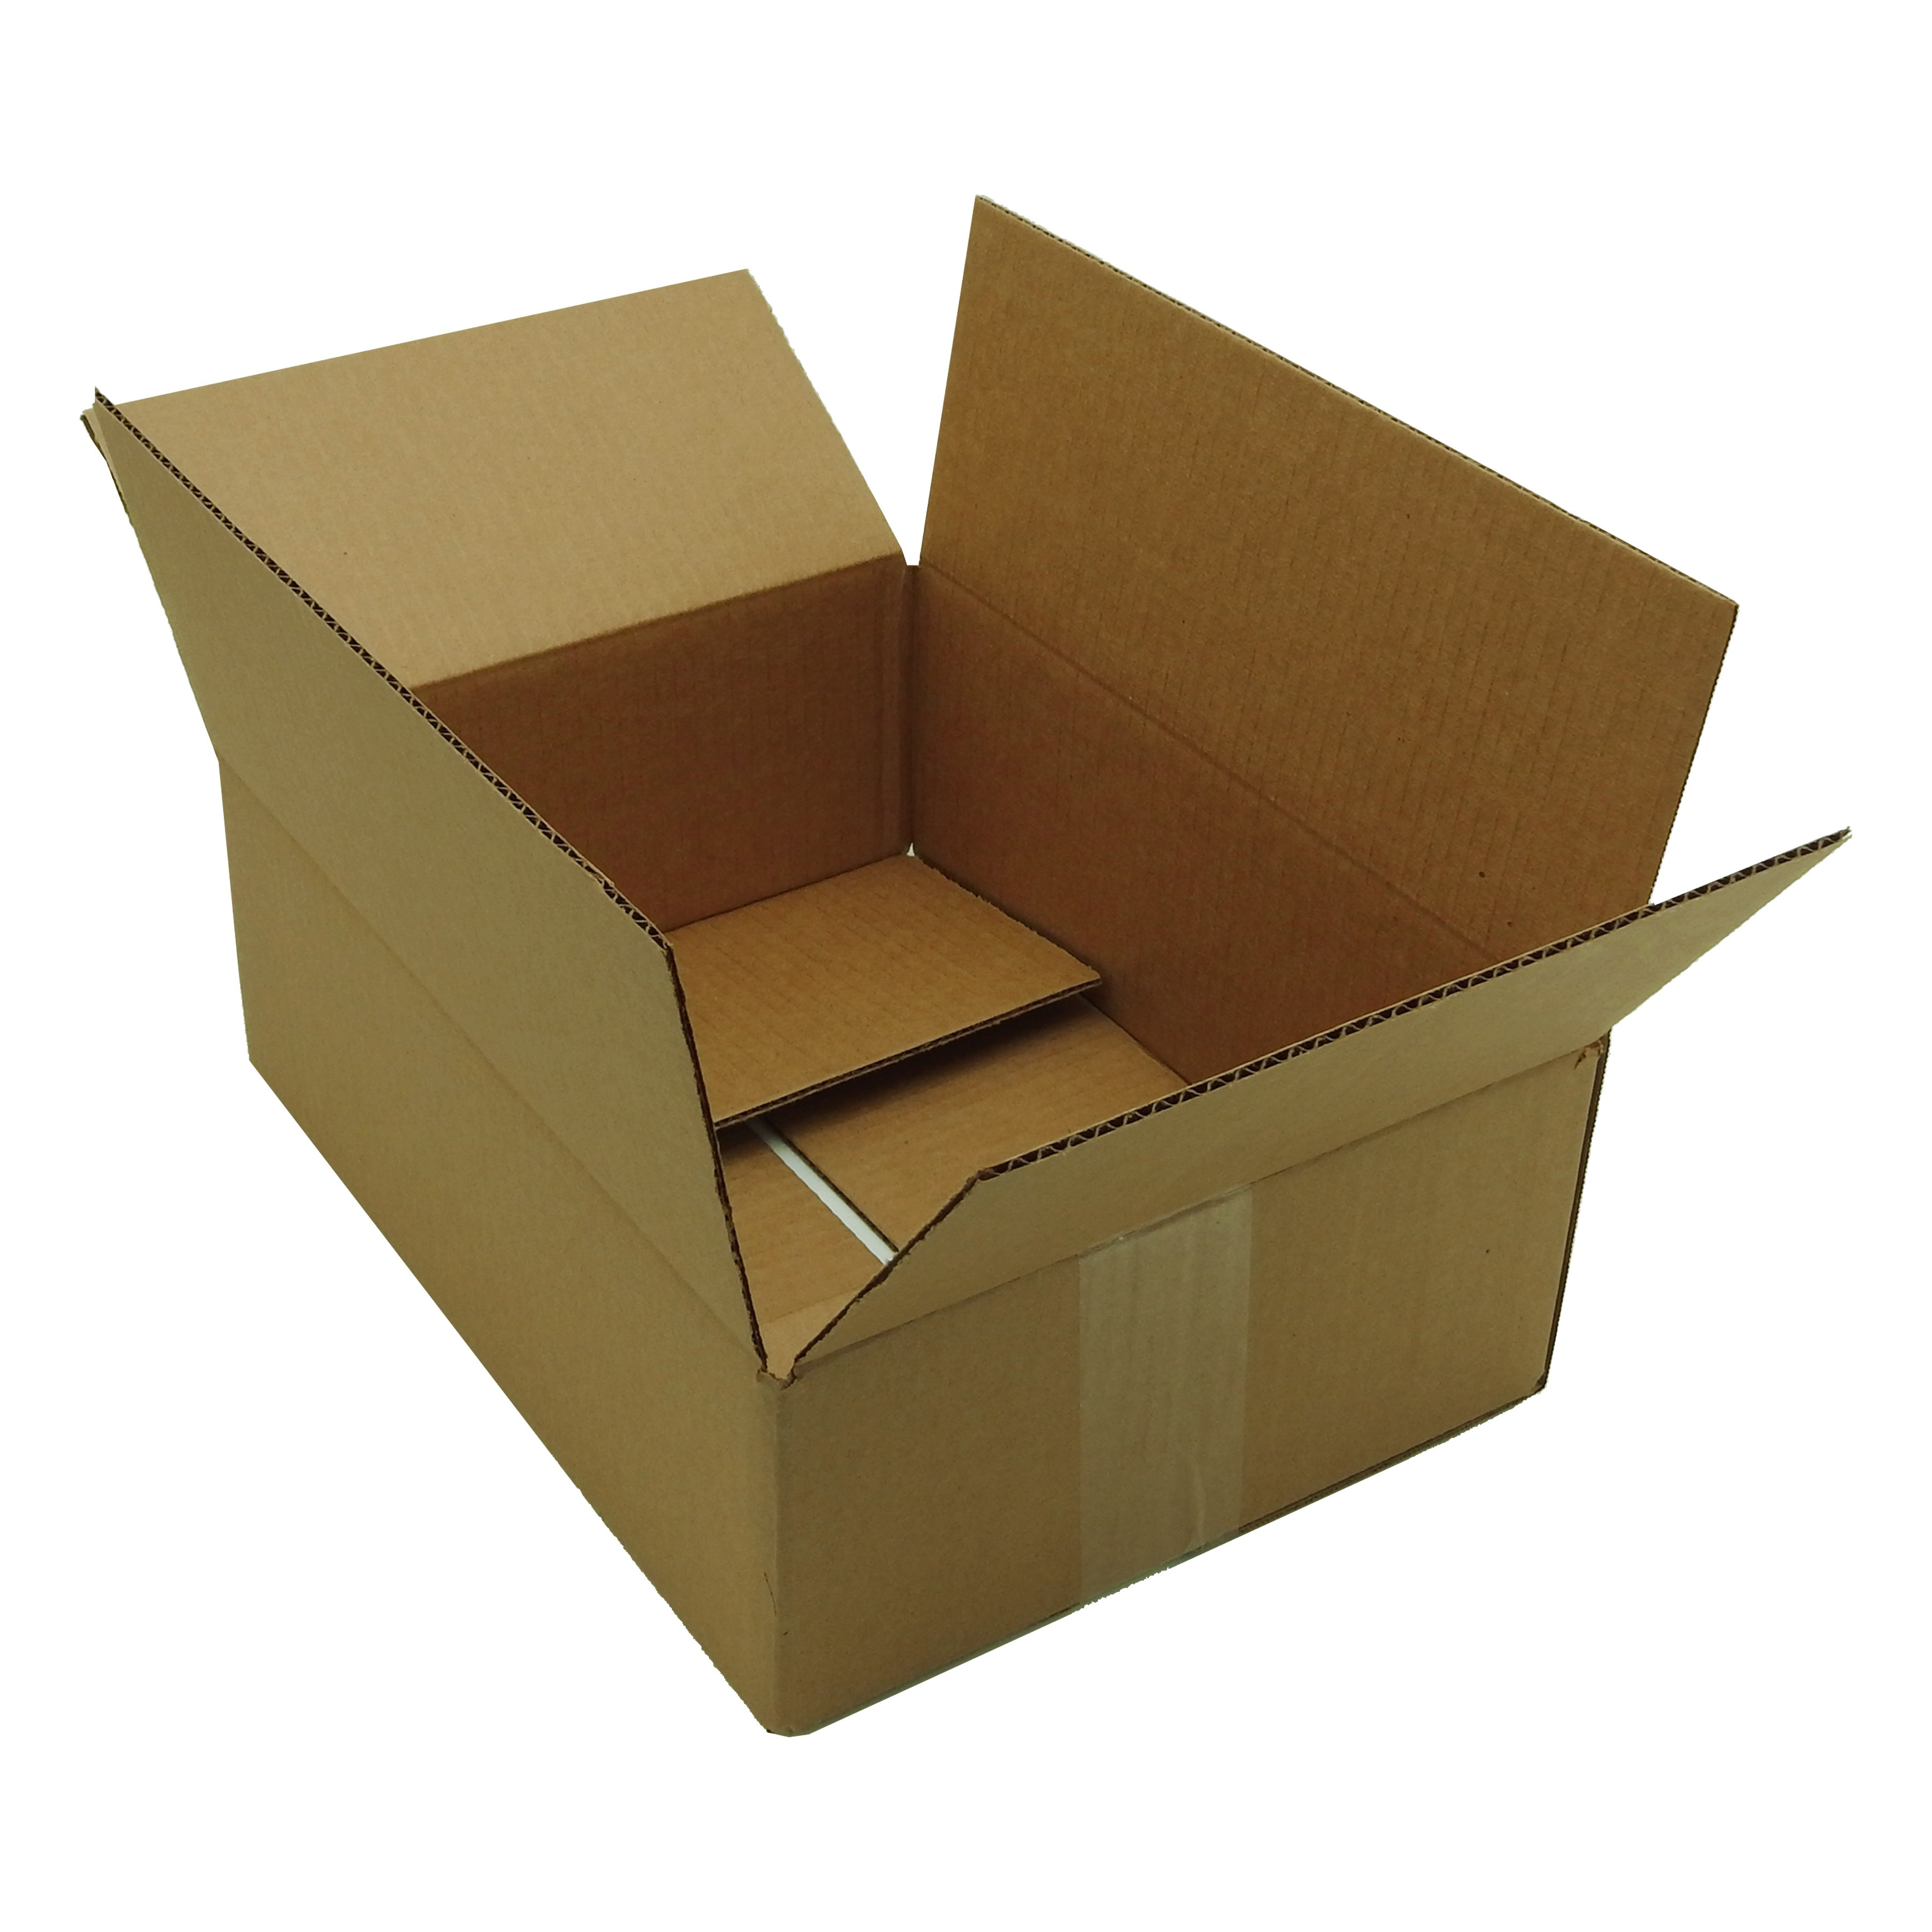 100 12x9x4 Corrugated Cardboard Shipping Mailing Packing Moving Boxes Box Carton